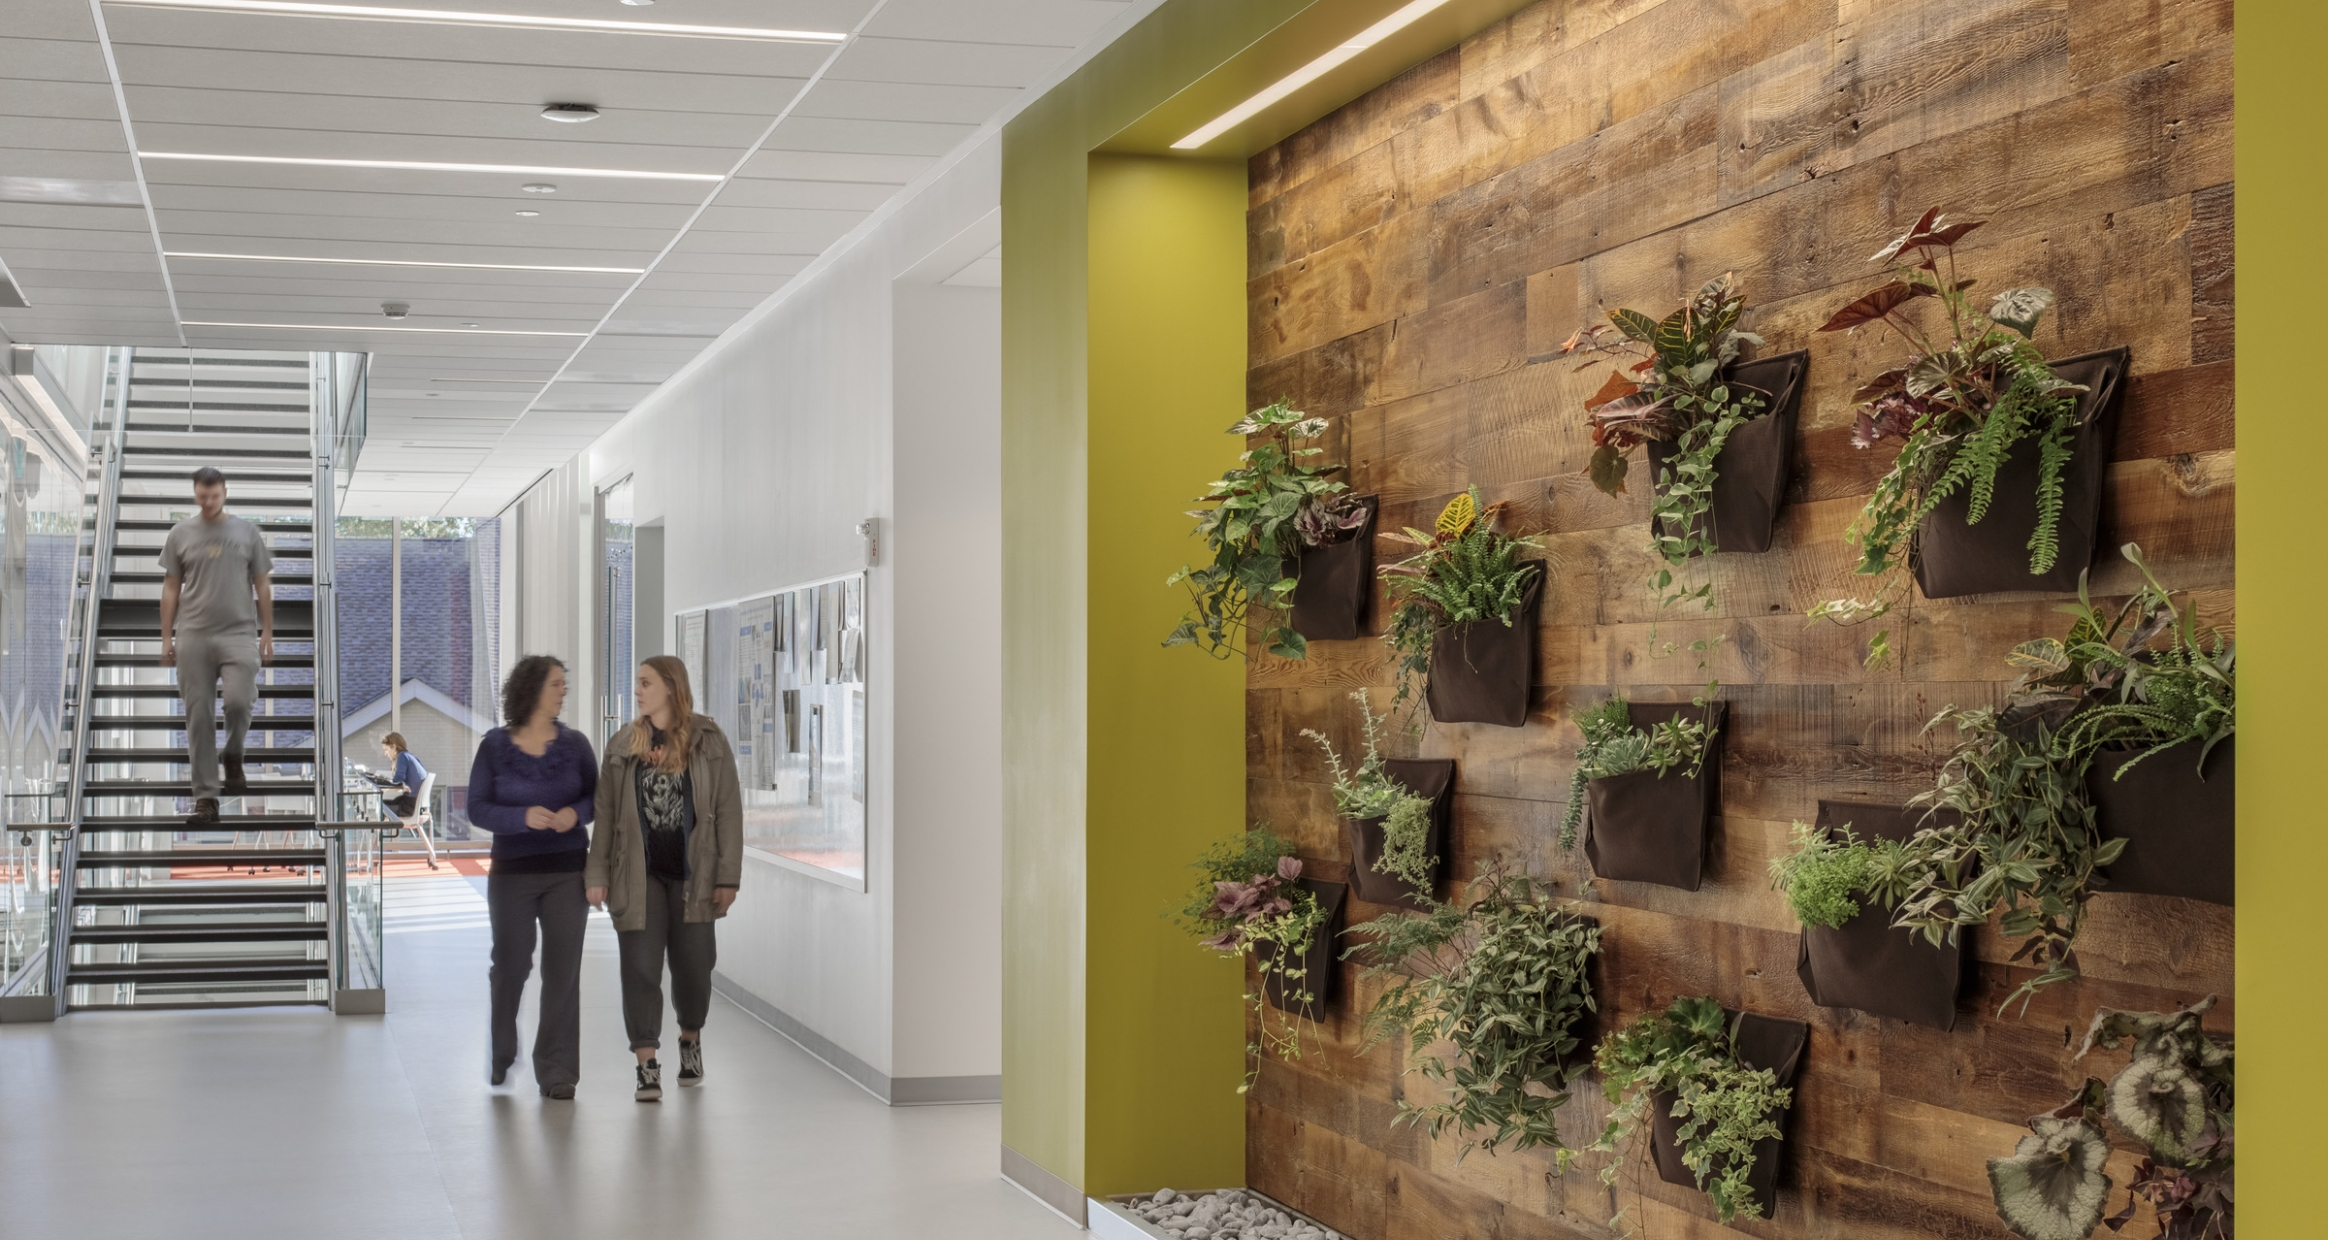 A green wall adorns a hallway in the College of Wooster Hall of Life Science